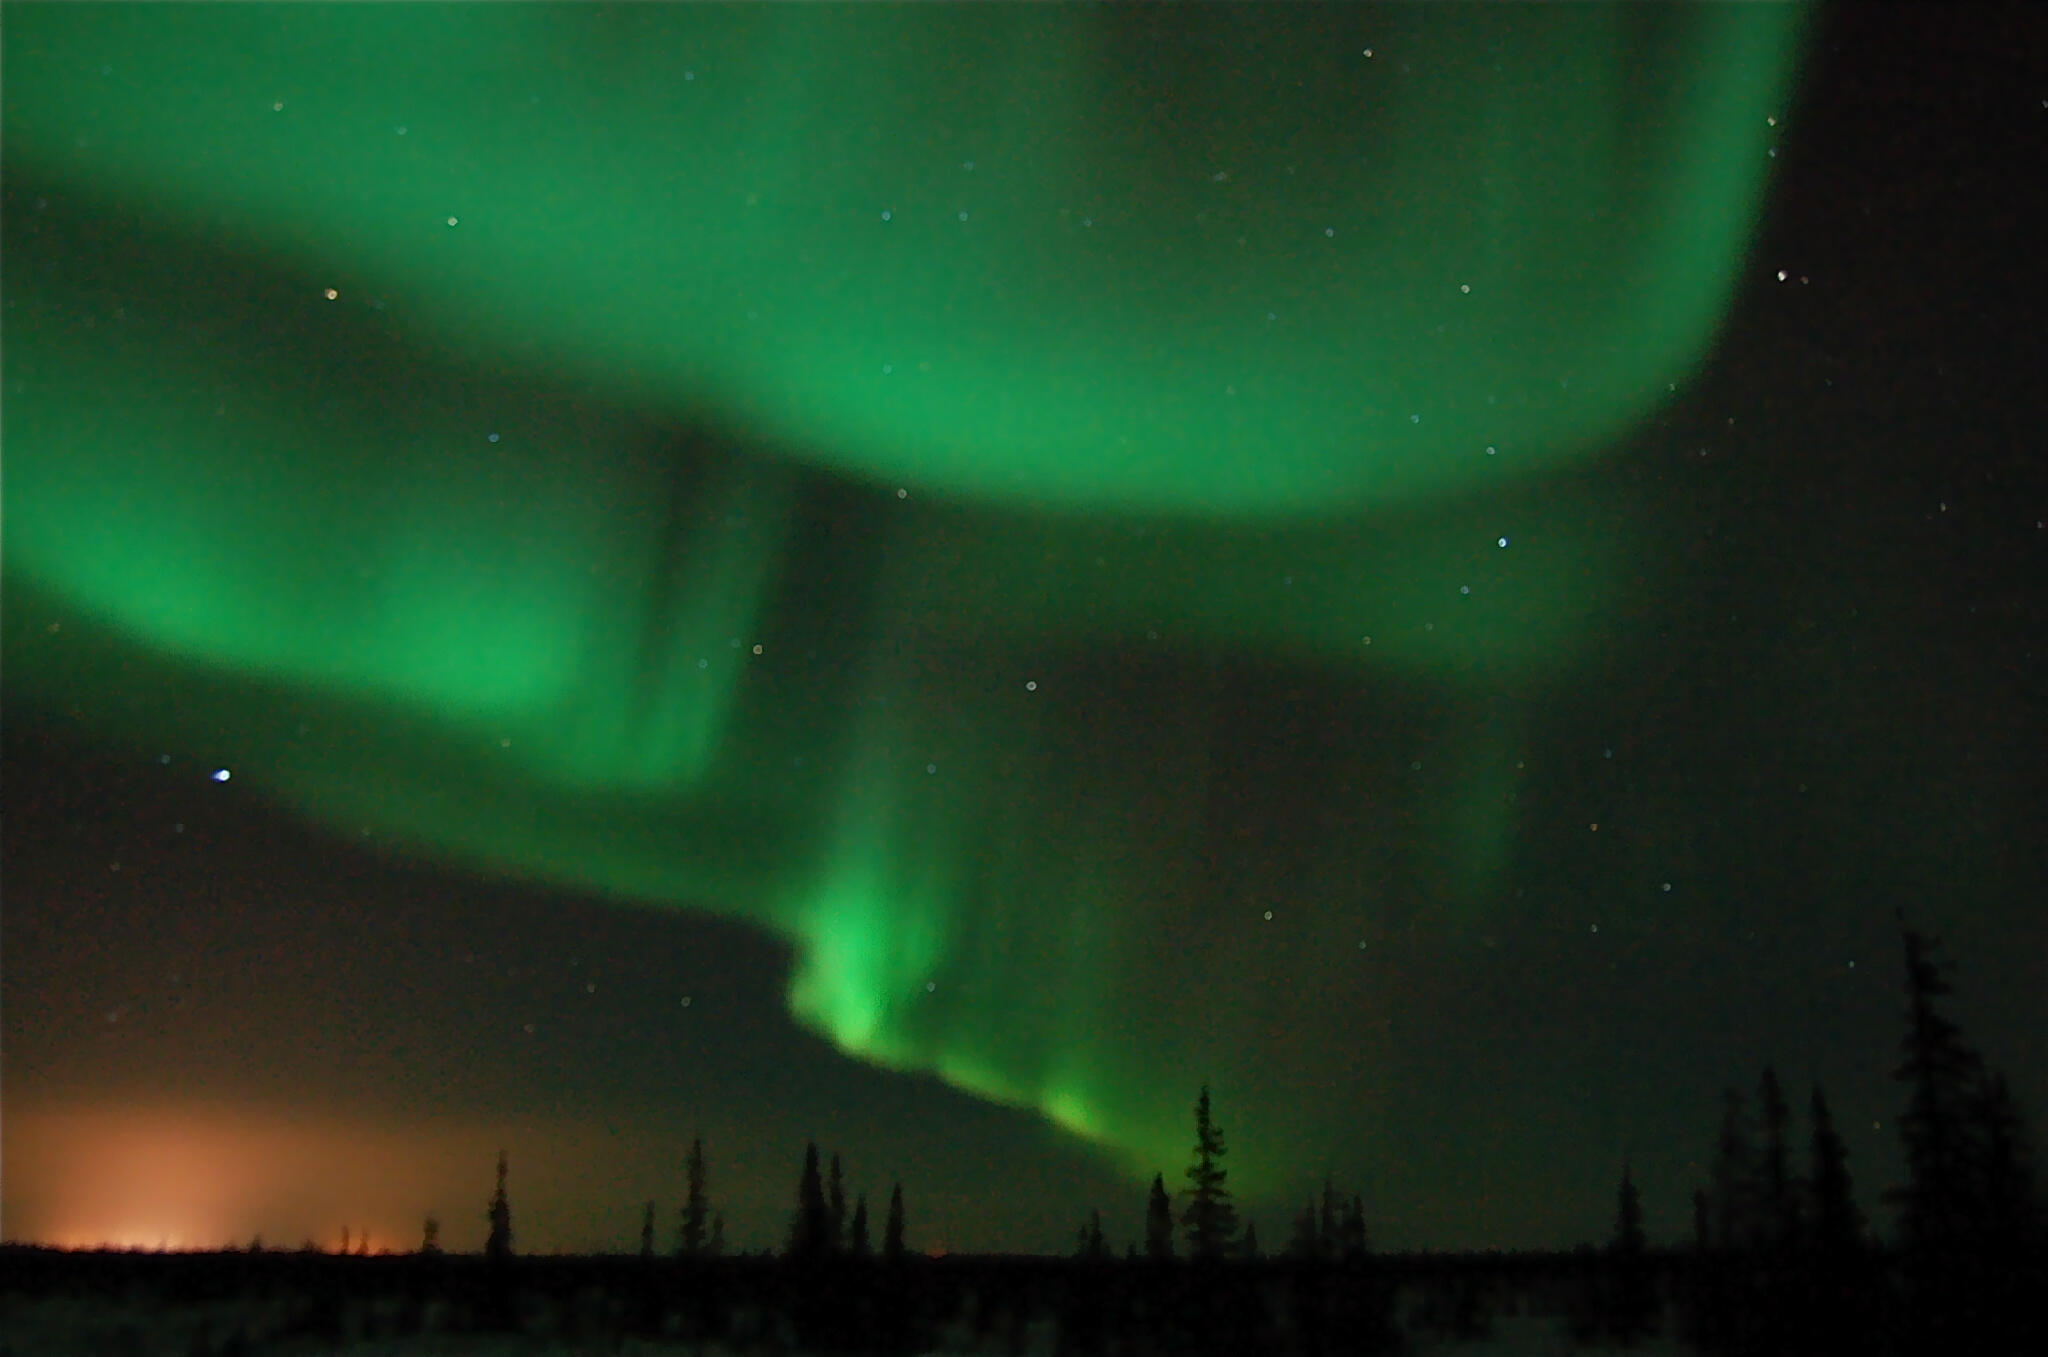 My favourite Northern Lights shot from last night here in Churchill, Manitoba, #Canada #mblights @Keep_Exploring http://t.co/qa3zYJU0j8